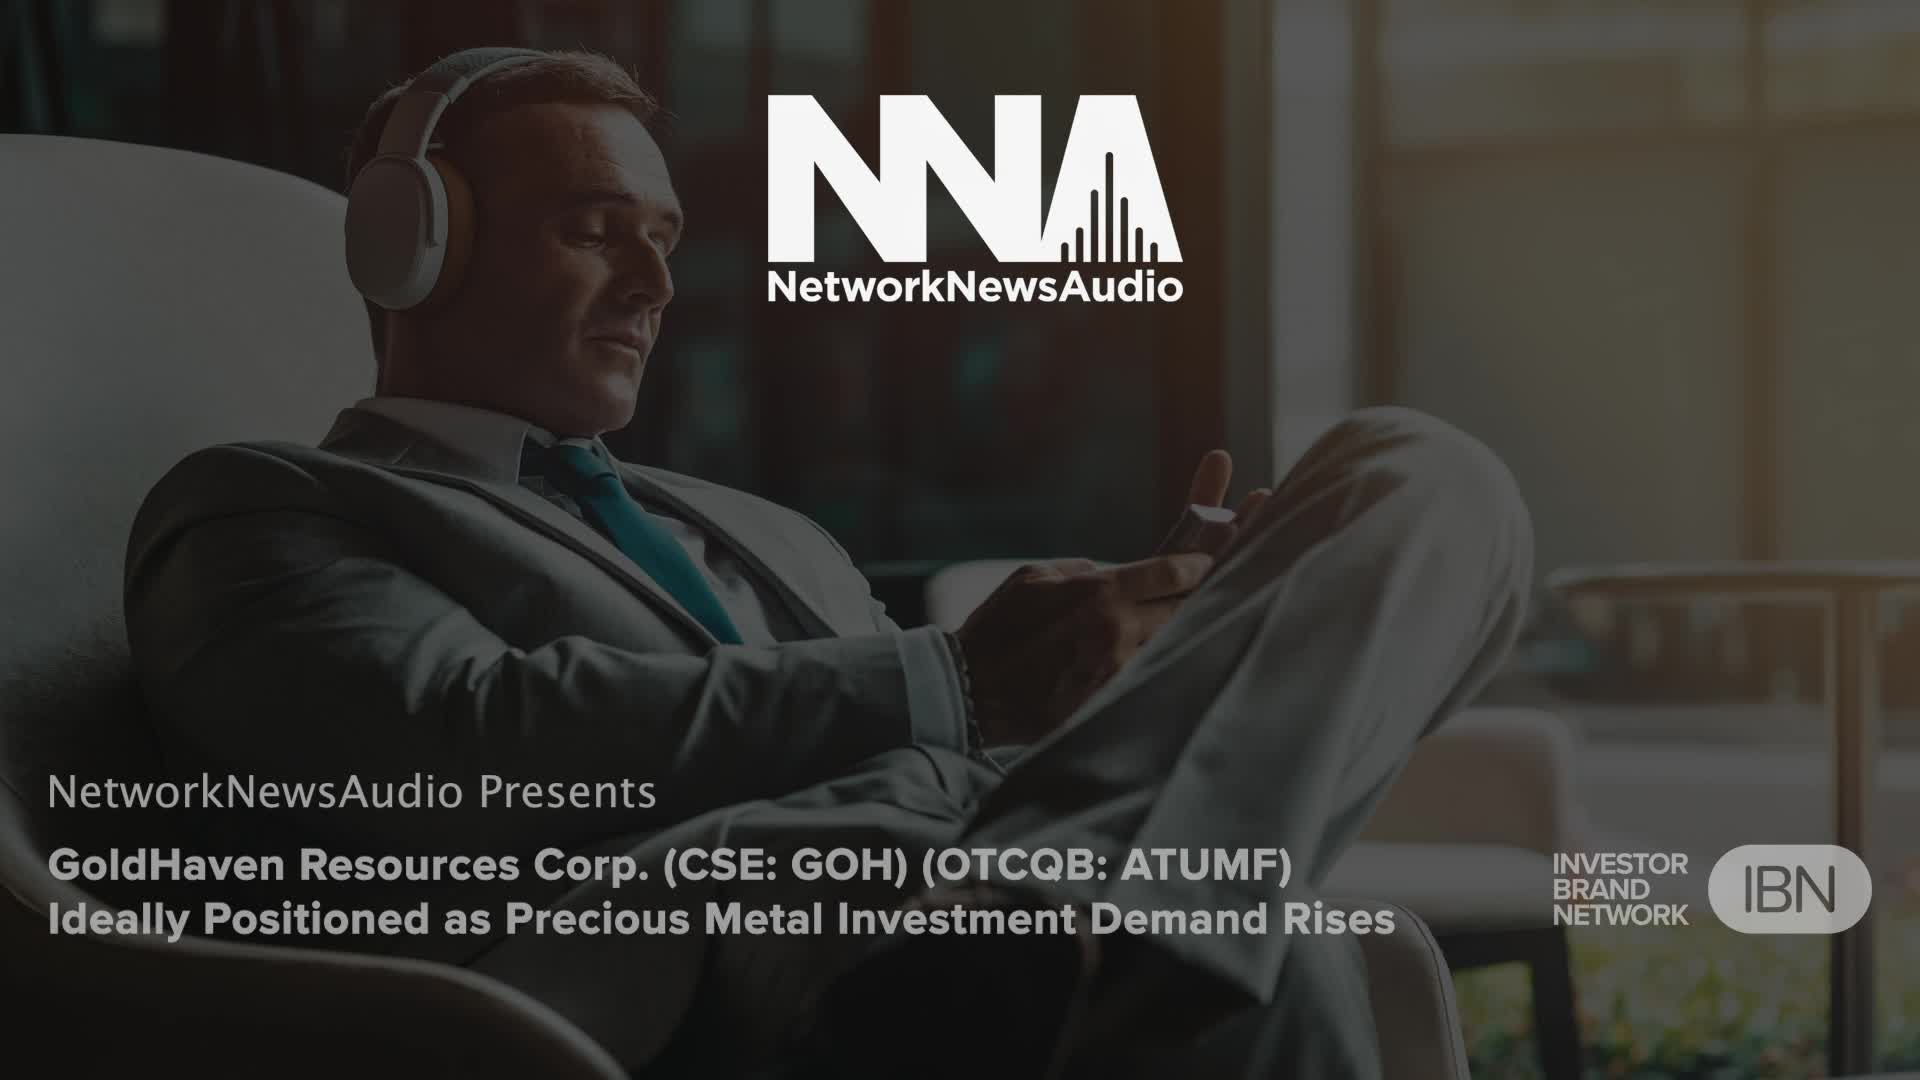 InvestorBrandNetwork-NetworkNewsAudio News-GoldHaven Resources Corp. (CSE: GOH) (OTCQB: ATUMF) Ideally Positioned as Precious Metal Investment Demand Rises